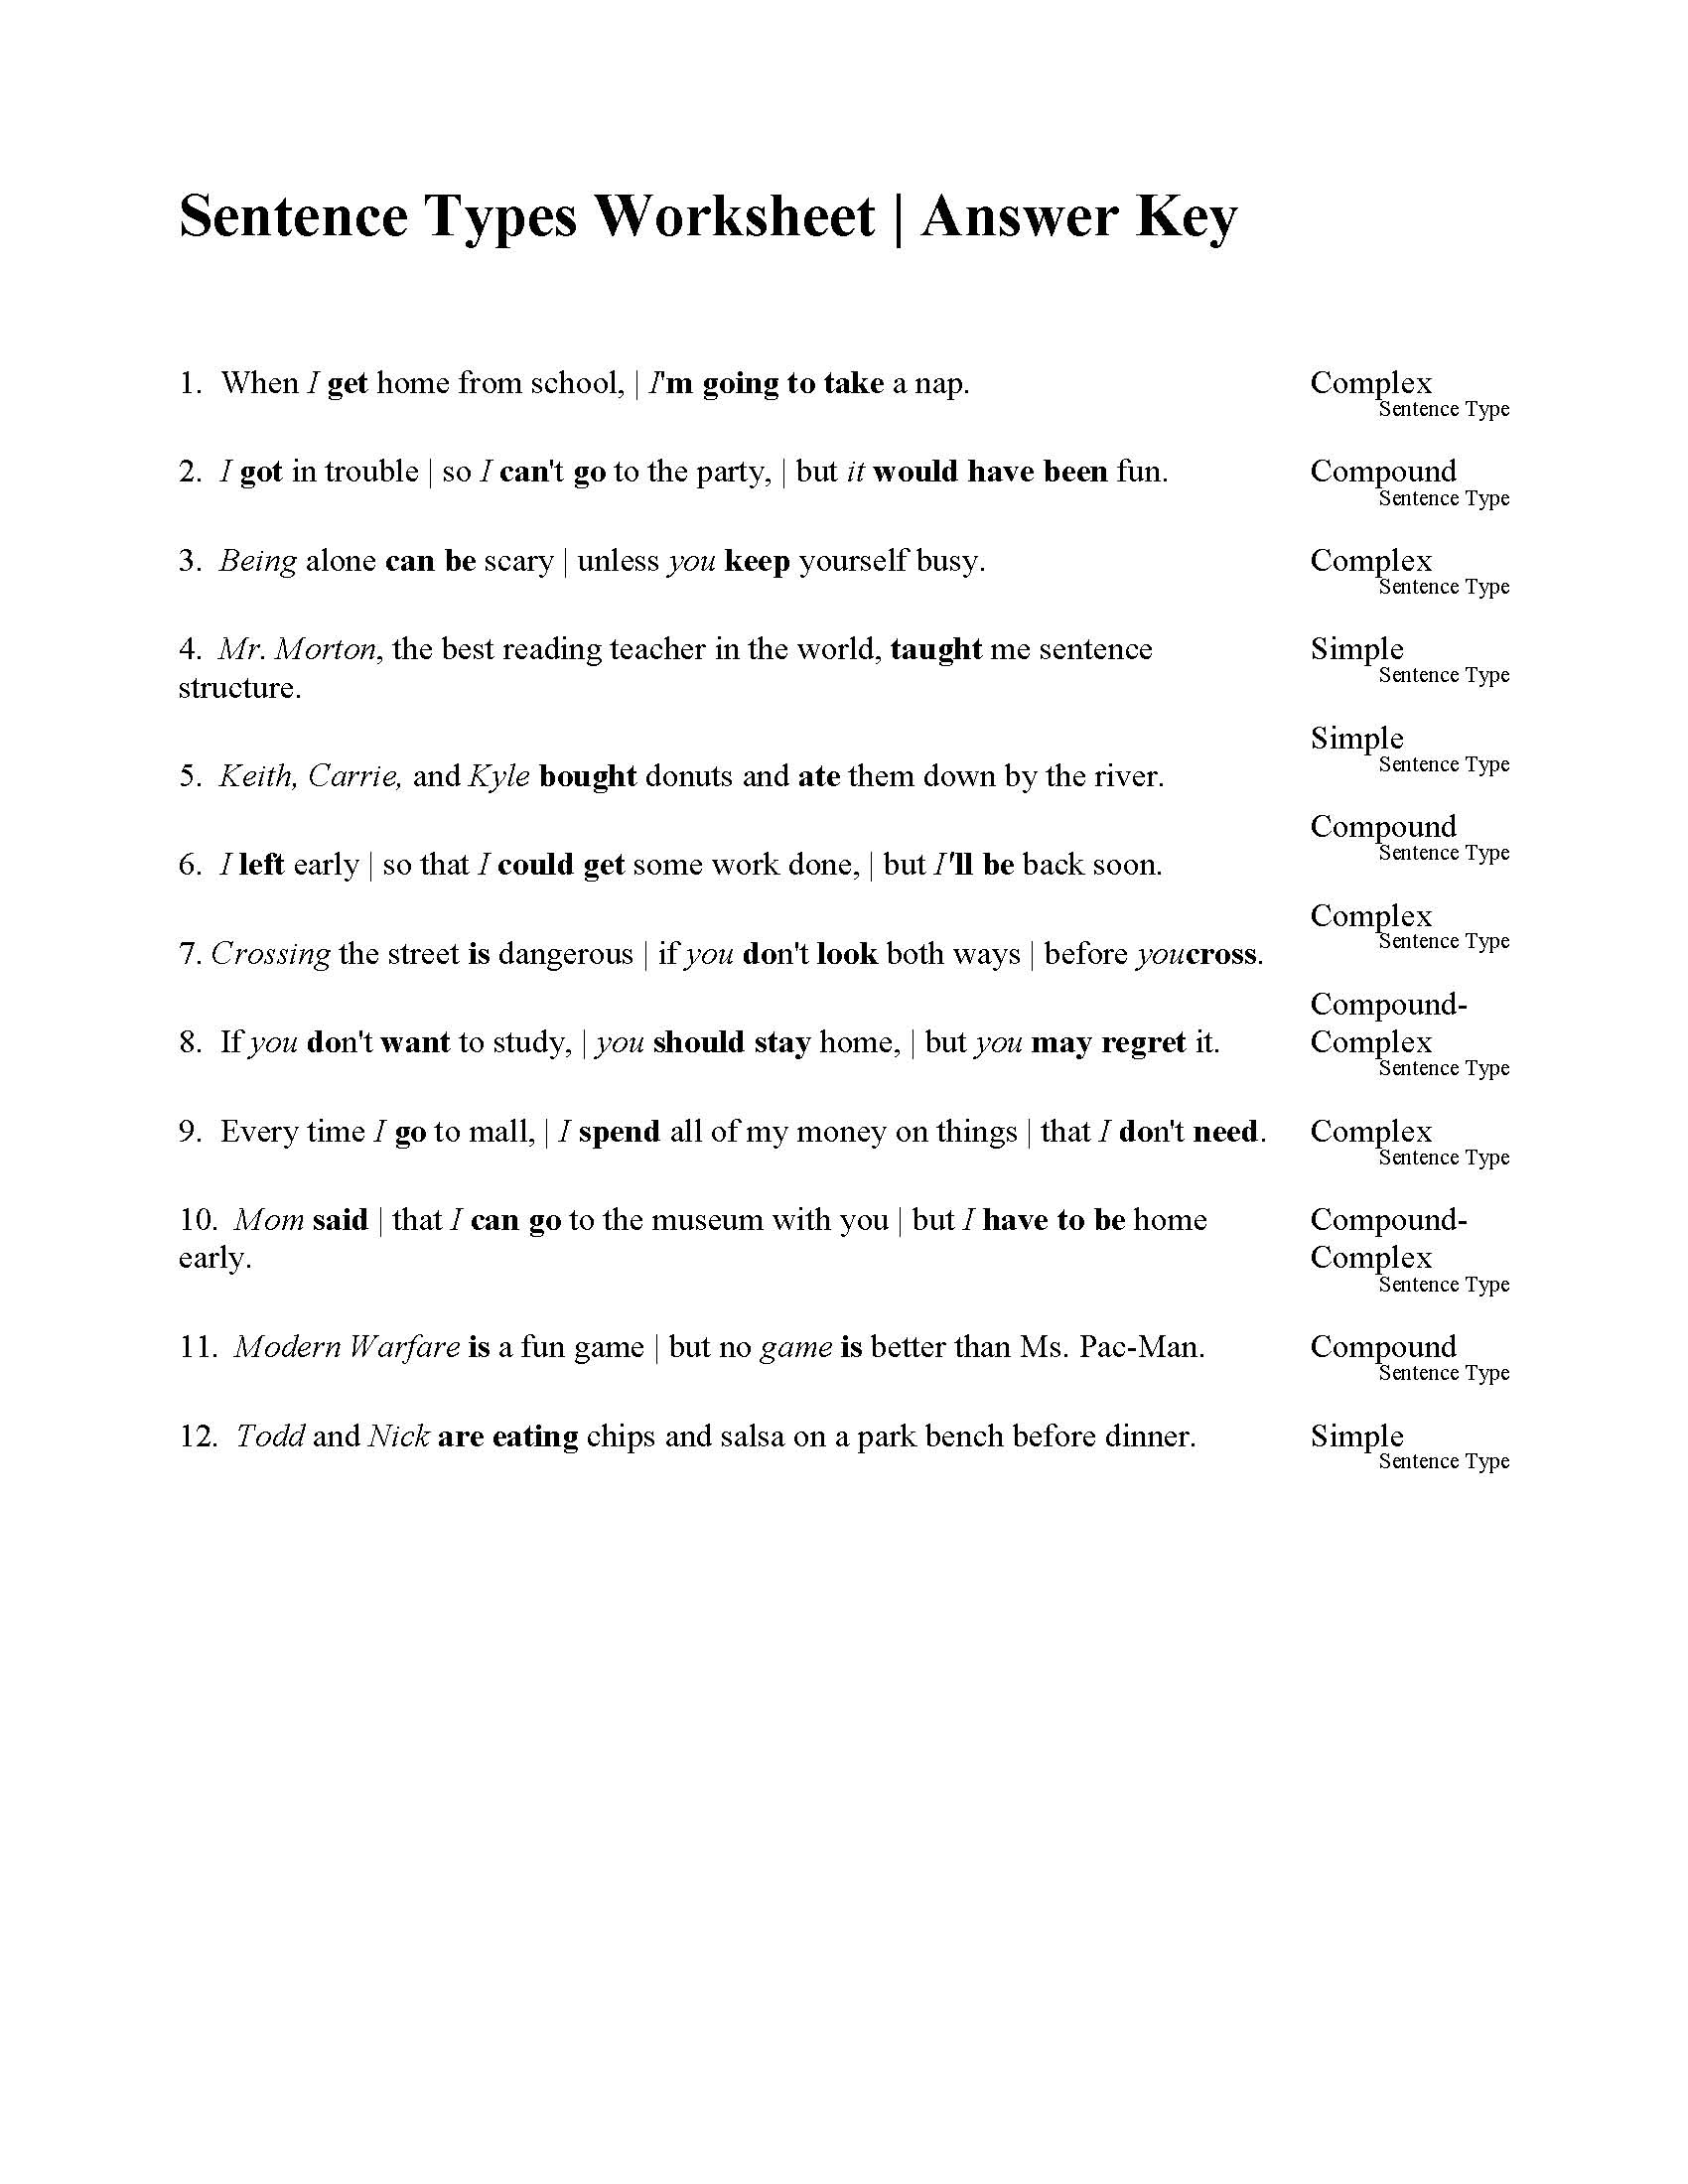 Kinds Of Sentences According To Structure Worksheet With Answers